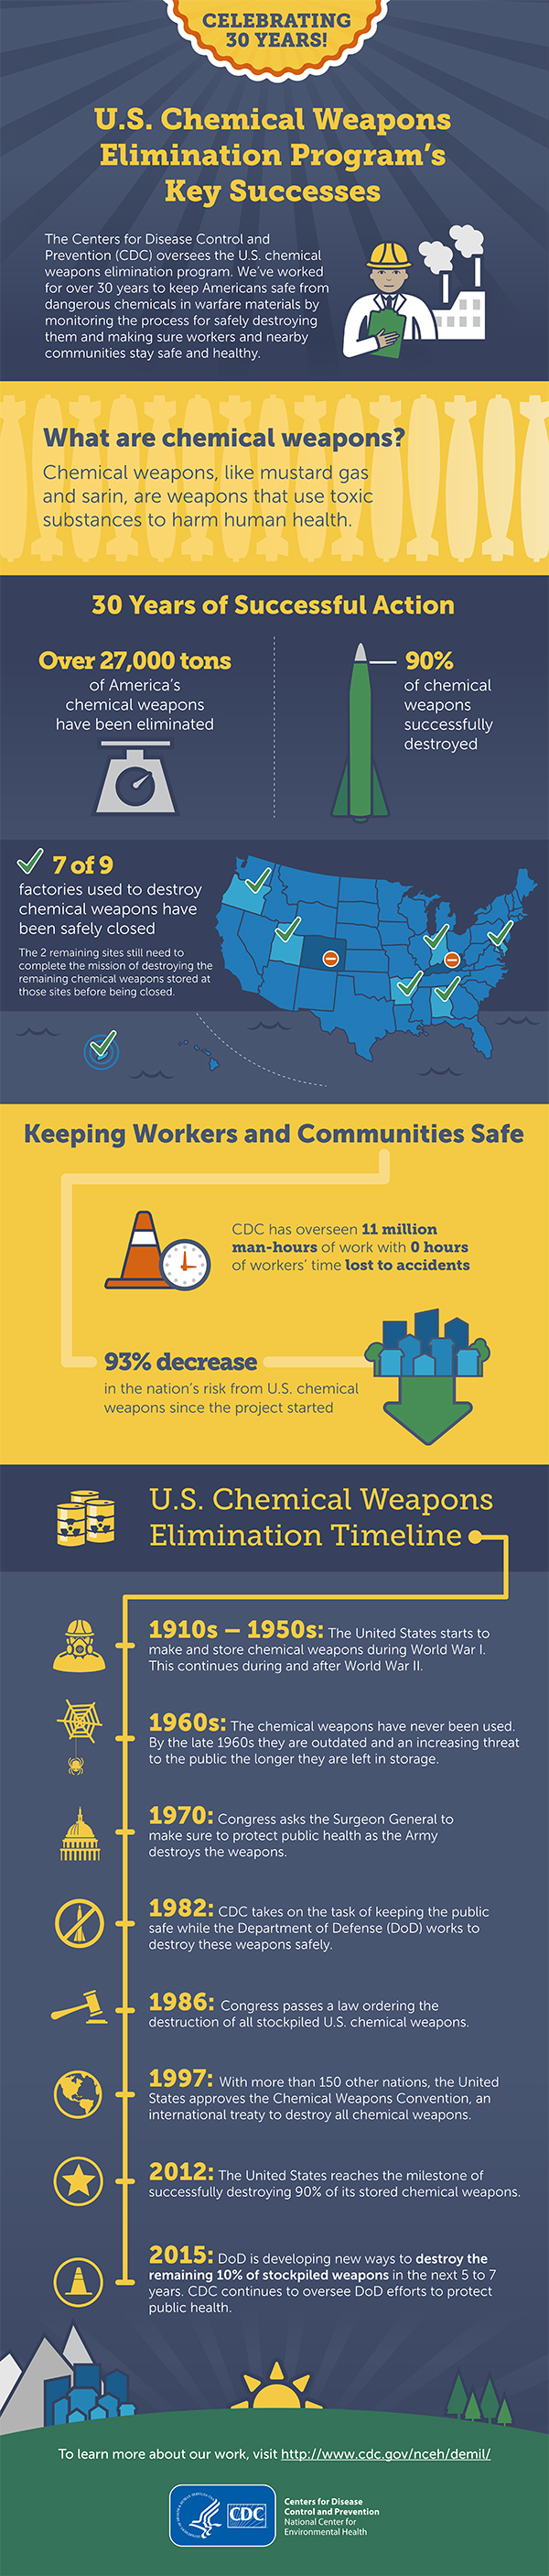 Chemical Weapons Elimination Infographic